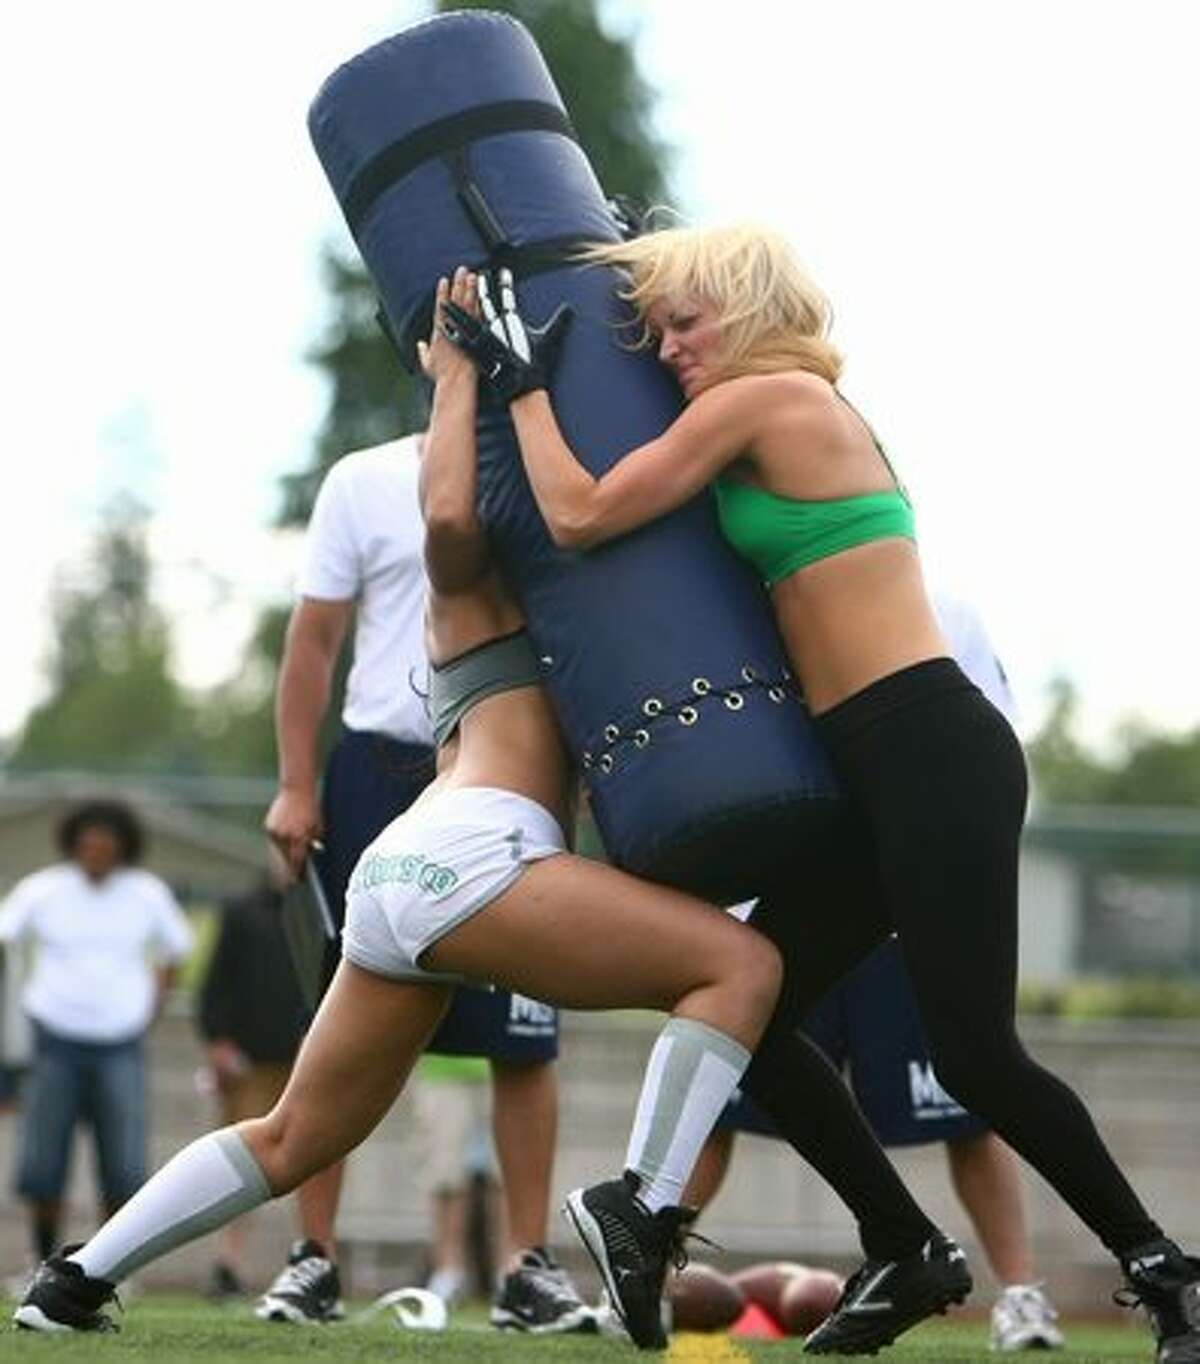 Women battle during drills.